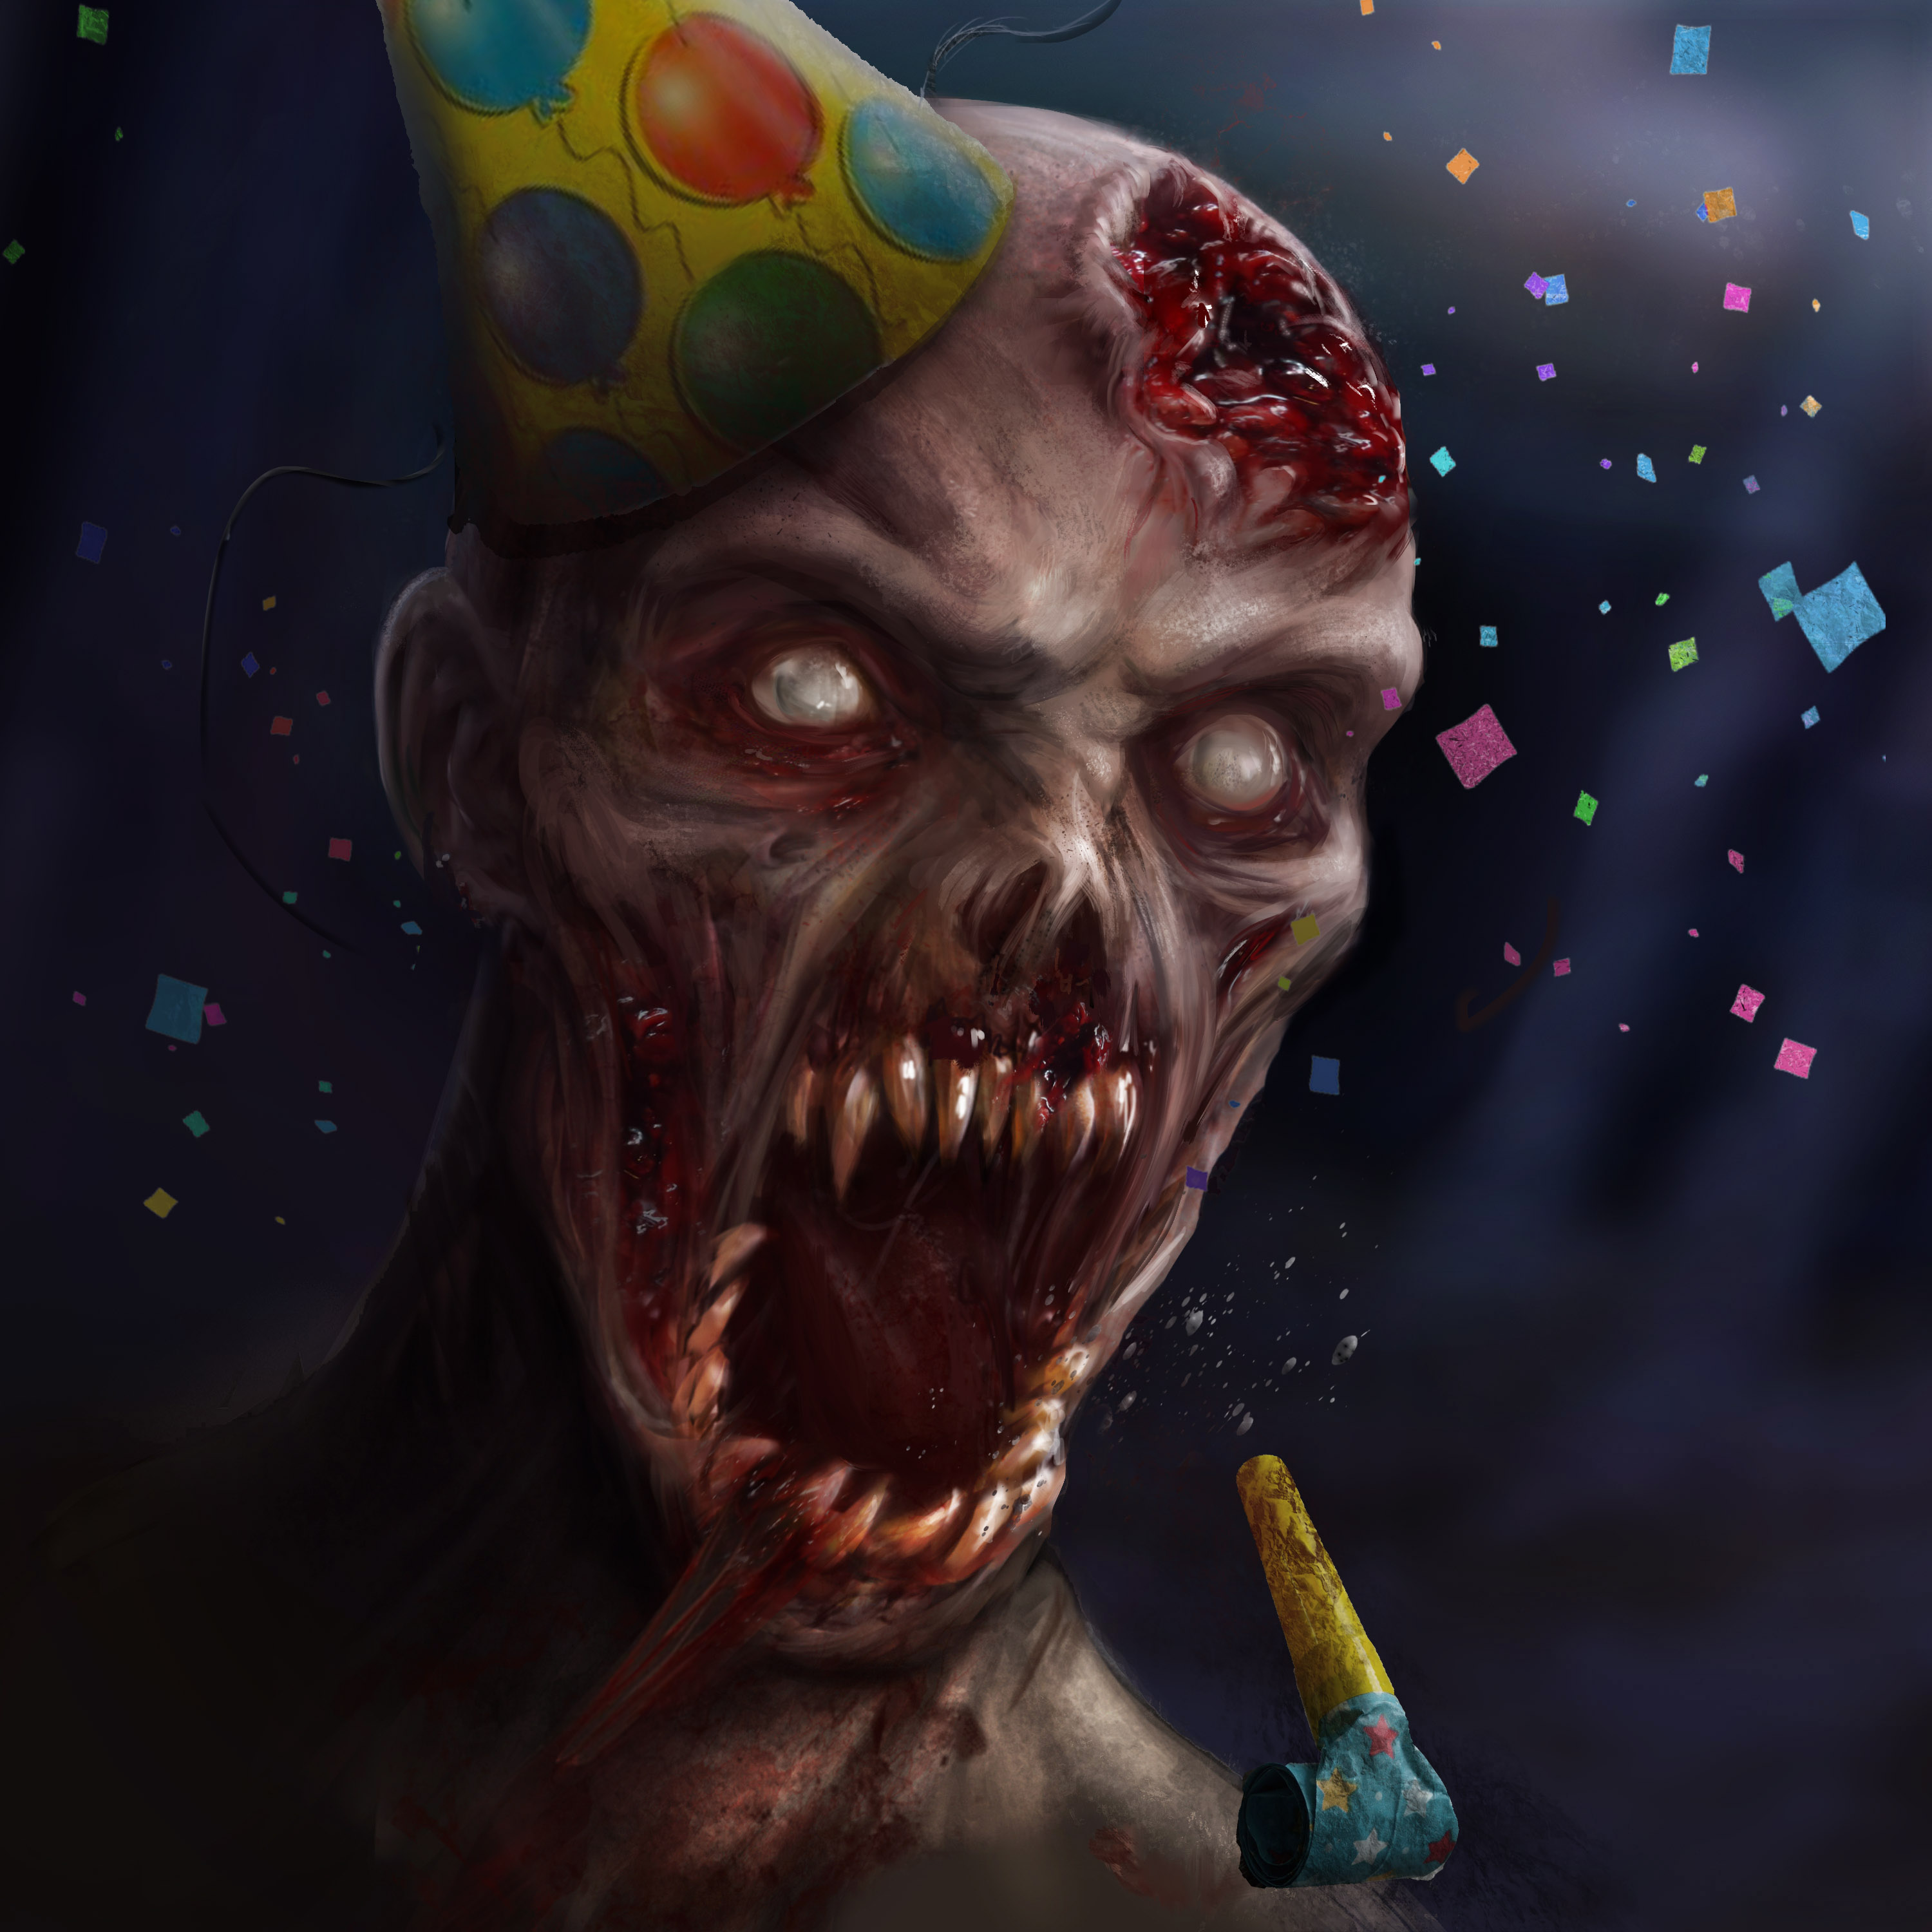 Party zombie